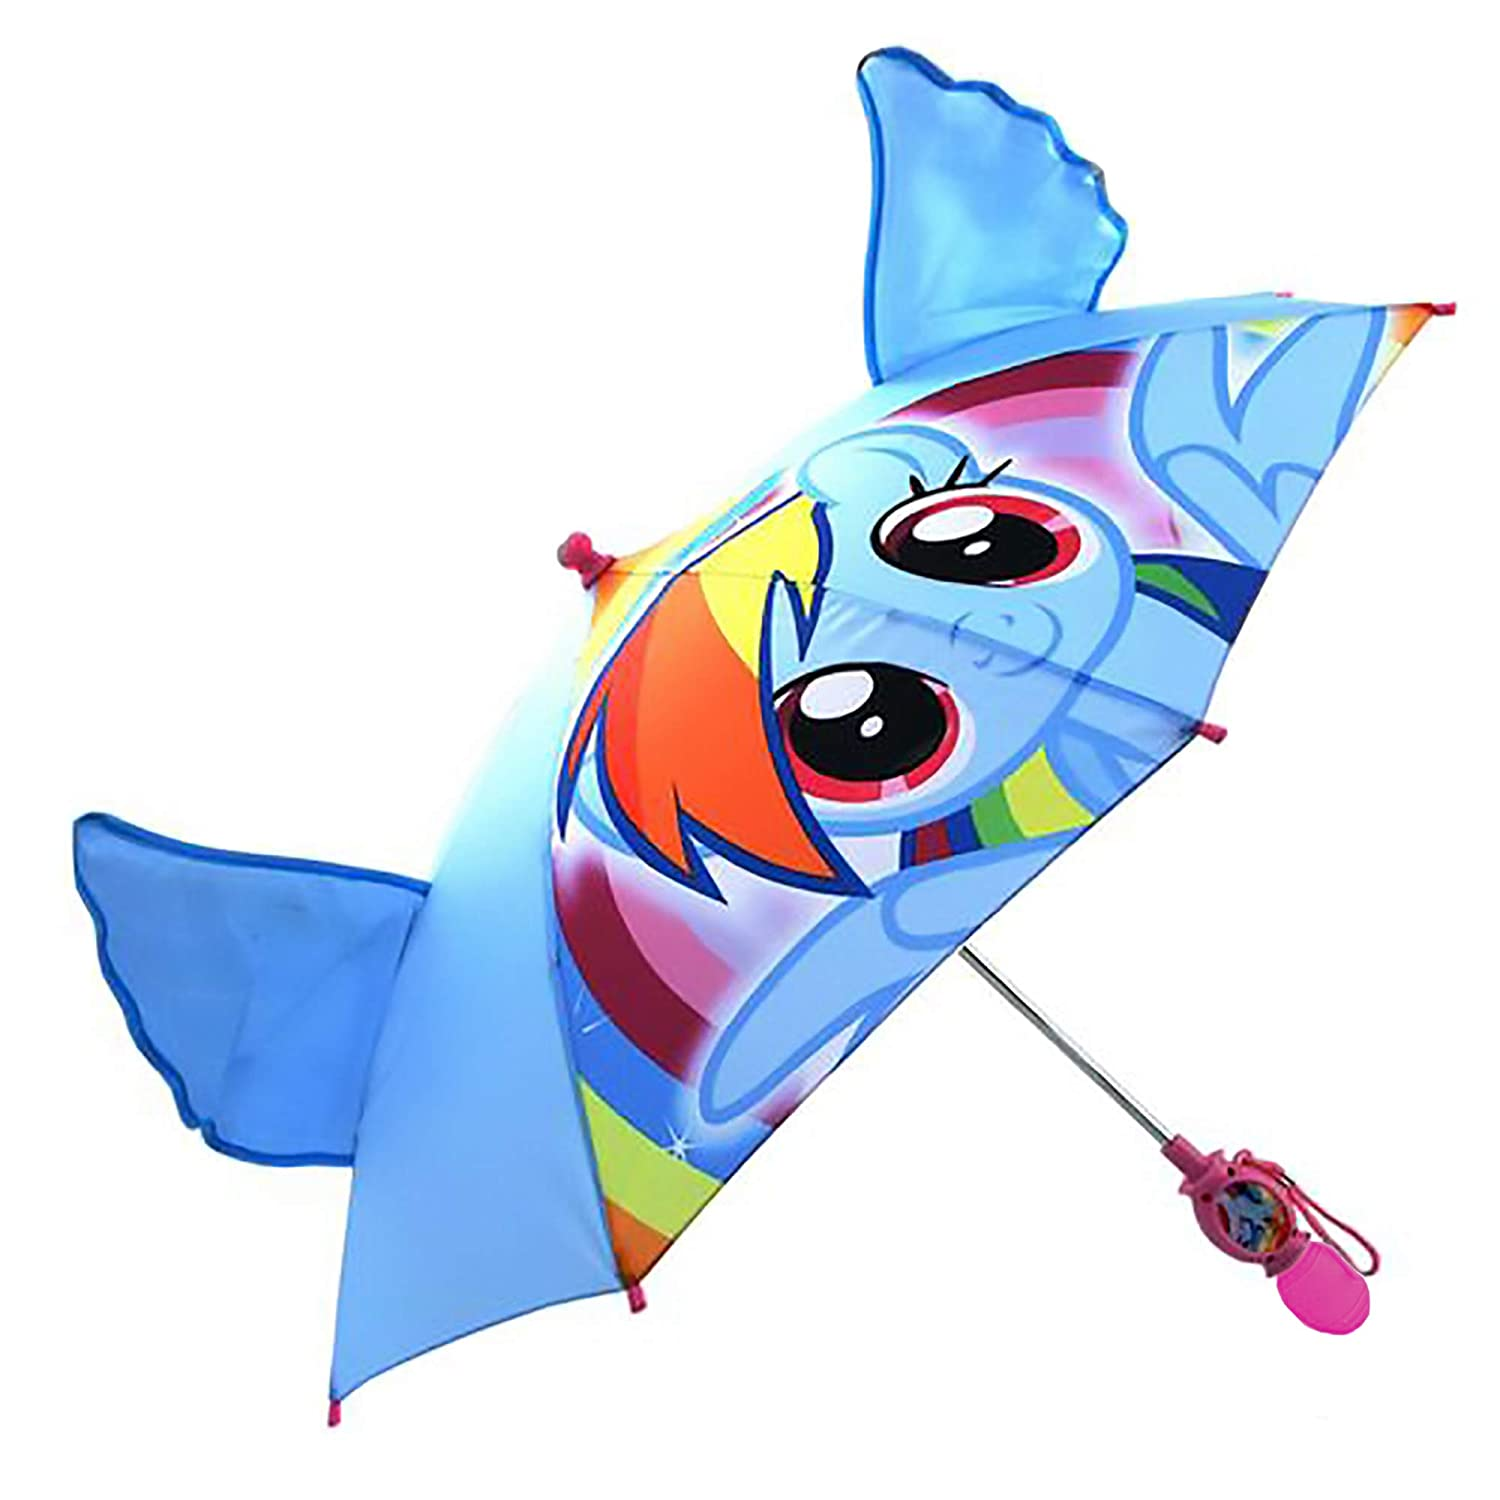 Hasbro Girls Little Pony 'Squeeze and Flap' Fun Rainwear Umbrella, Blue, Age 3-7